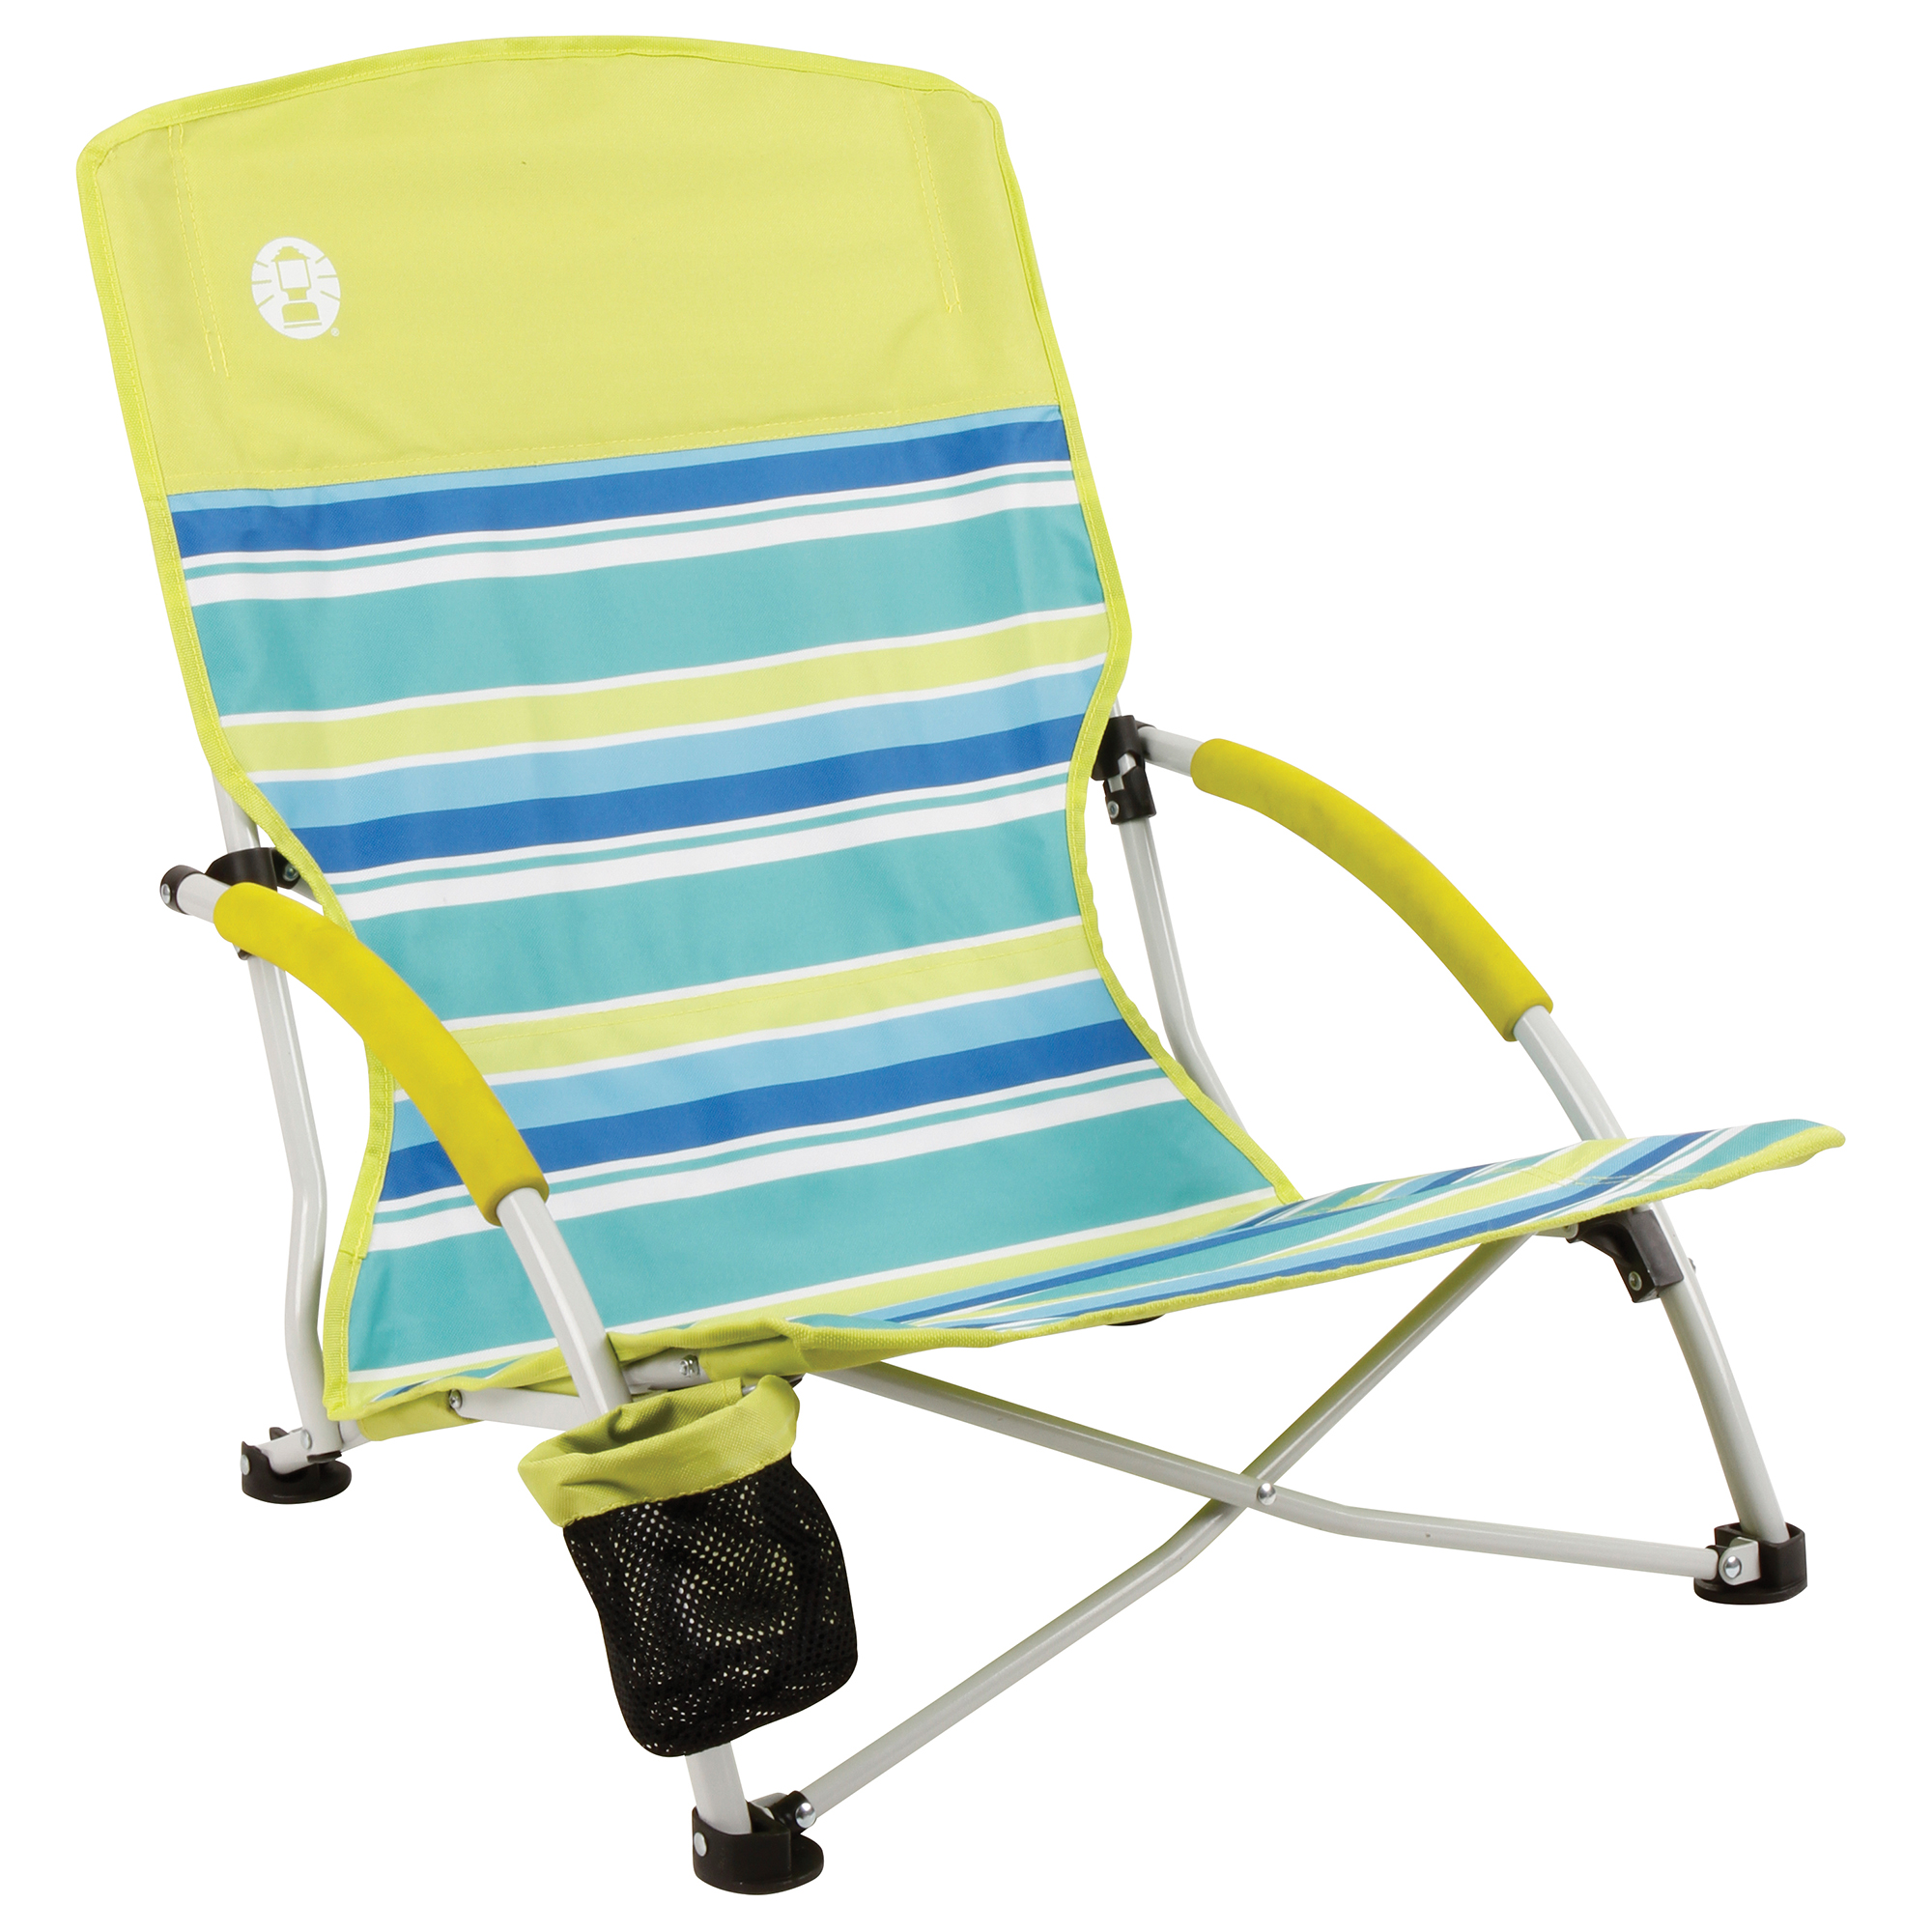 Incroyable Coleman 2000019265 Chair Low Sling Beach Citrus